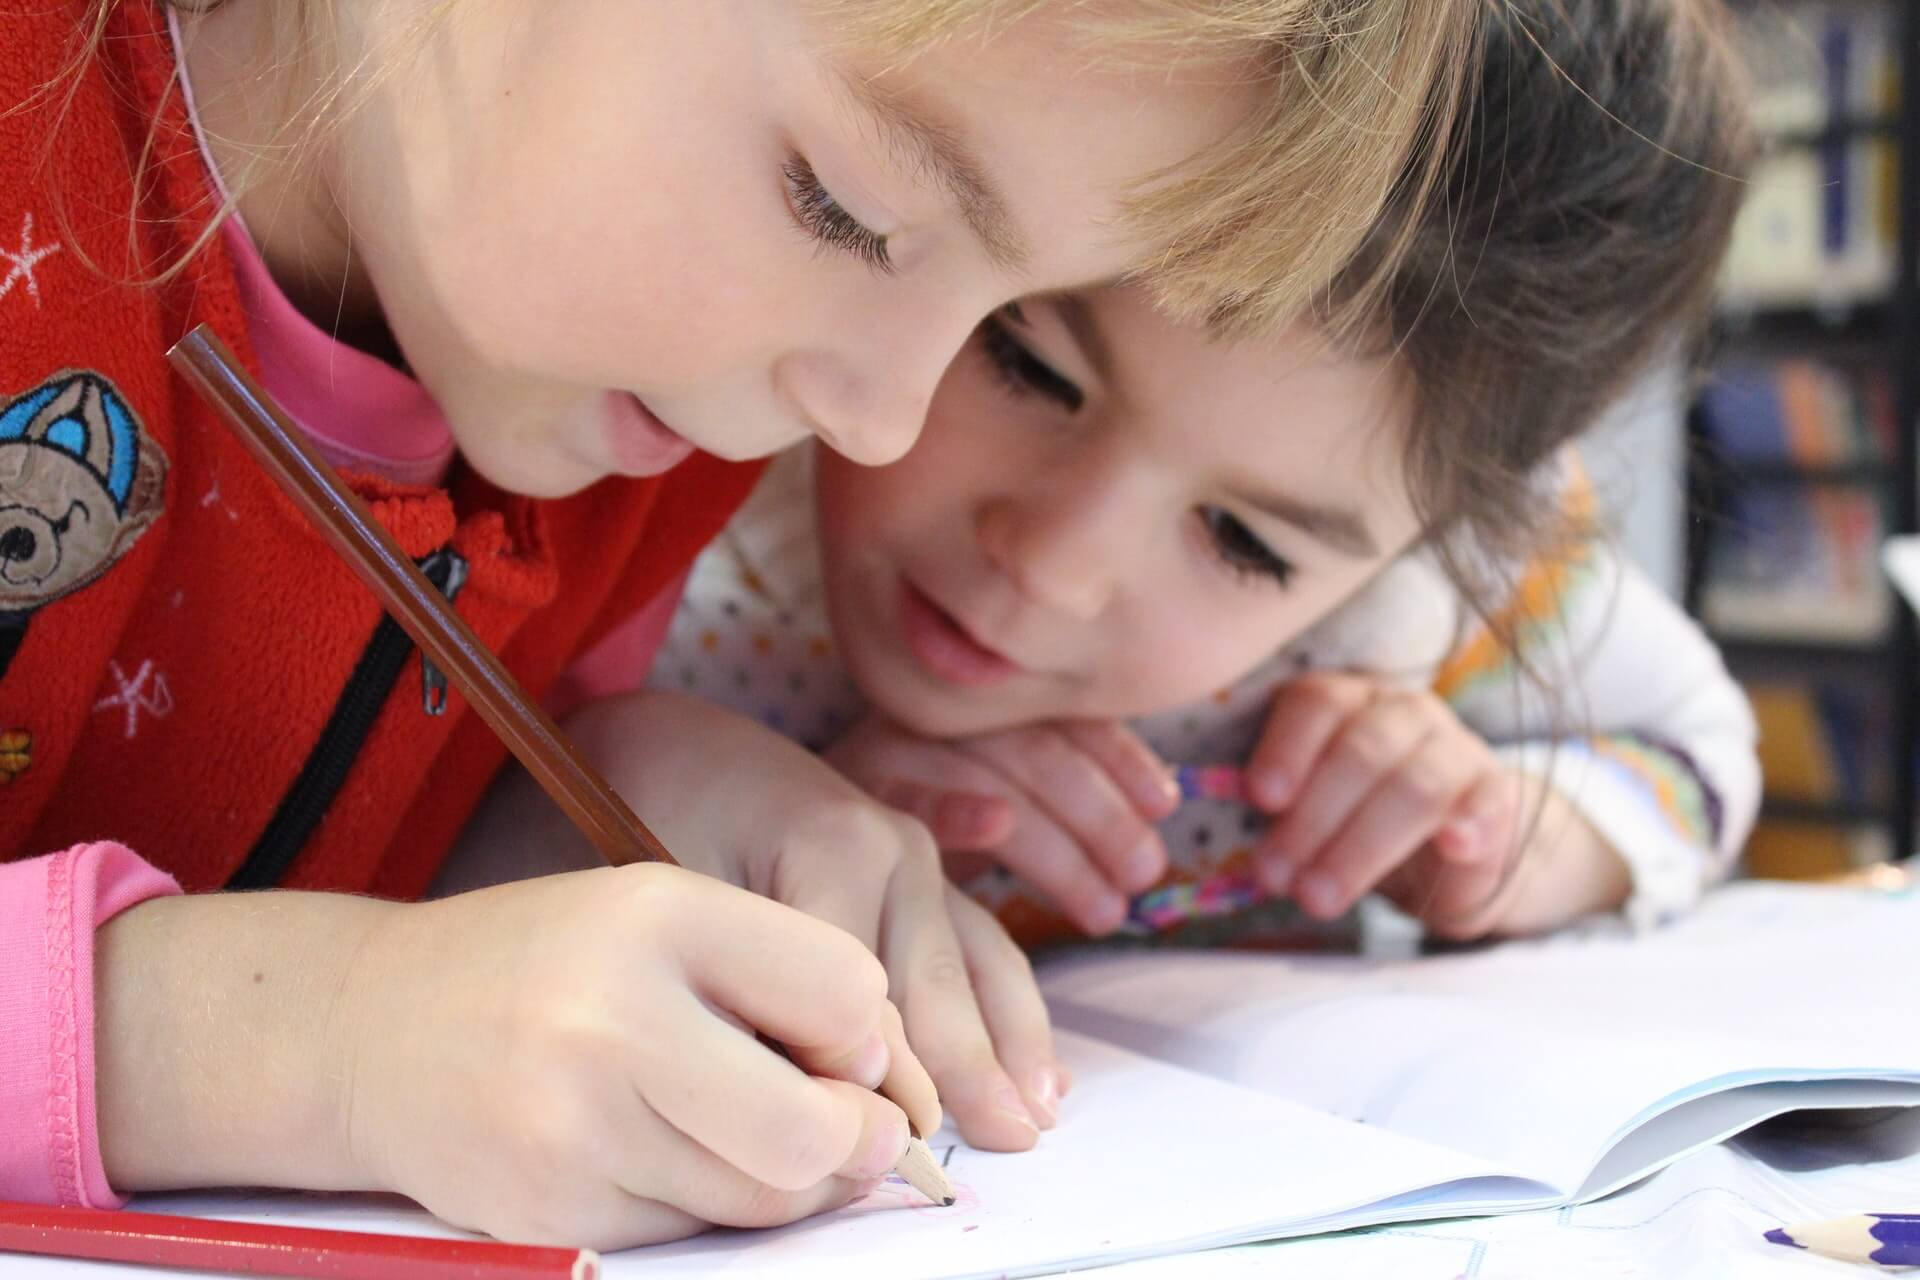 day care cleaning services, Two girls focused on writing in a notebook at school